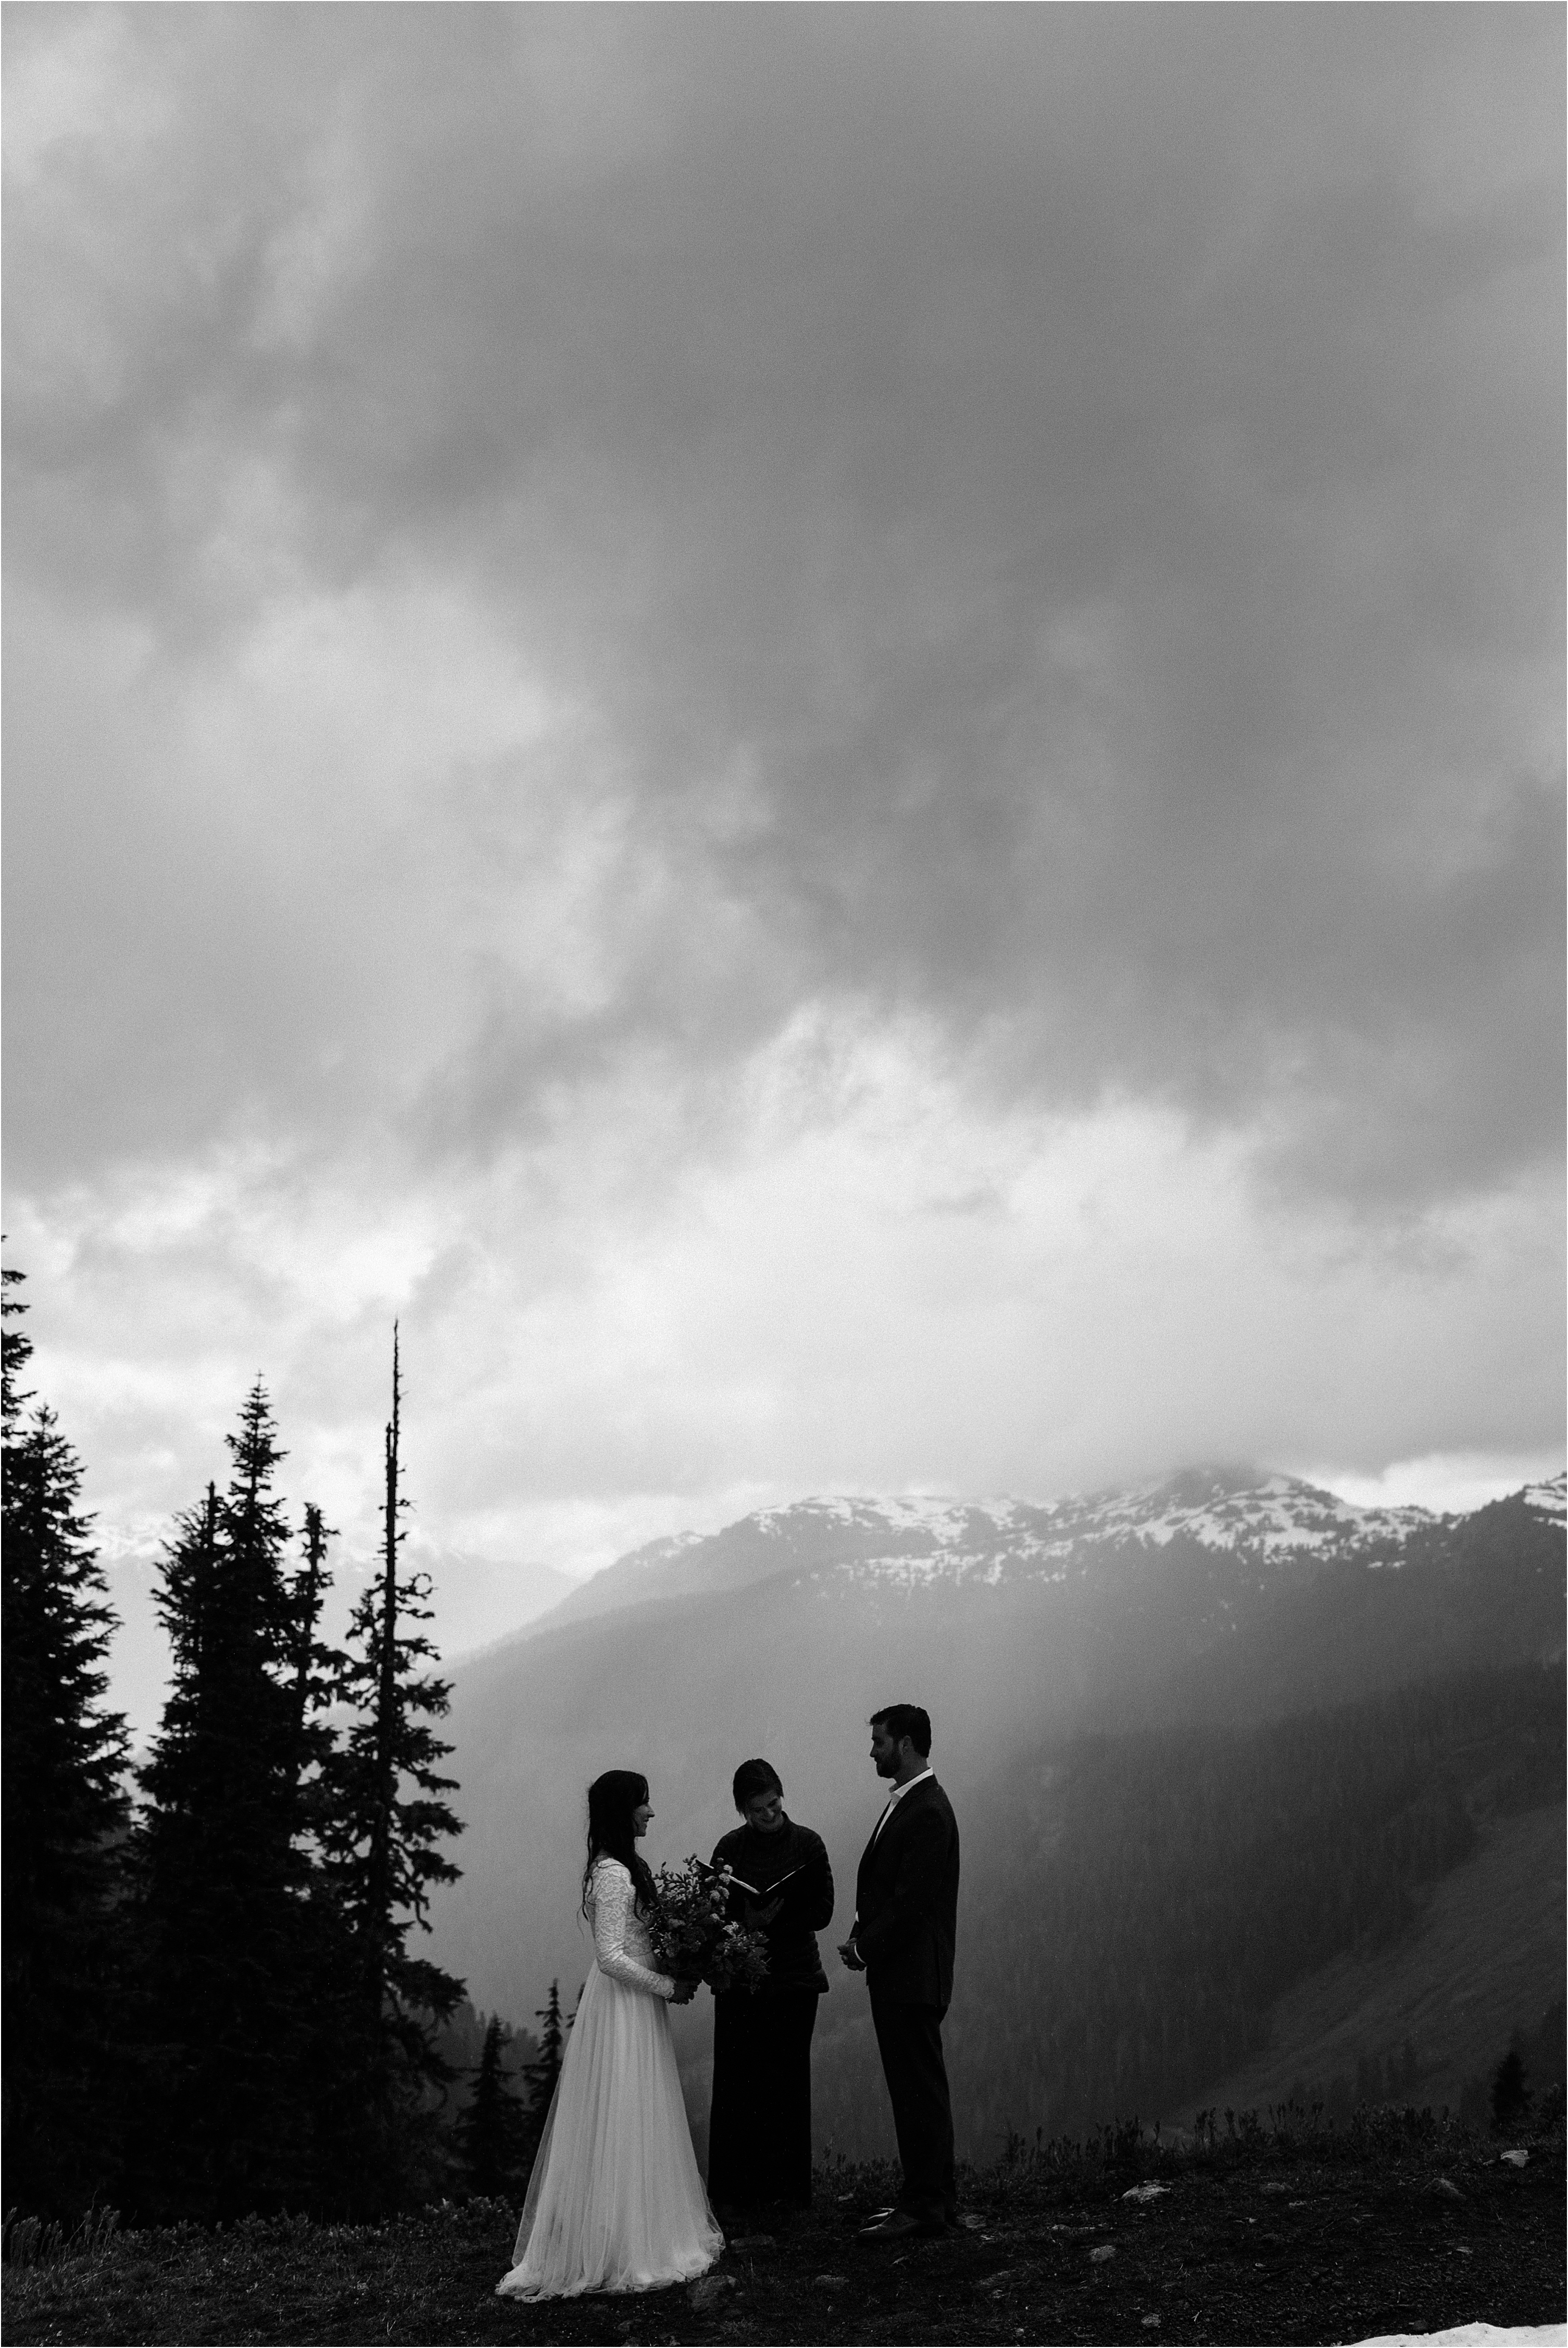 A rainy elopement Ceremony in the mountains surrounding Mt. Baker. Image by Forthright Photo, Seattle Elopement Photographers.